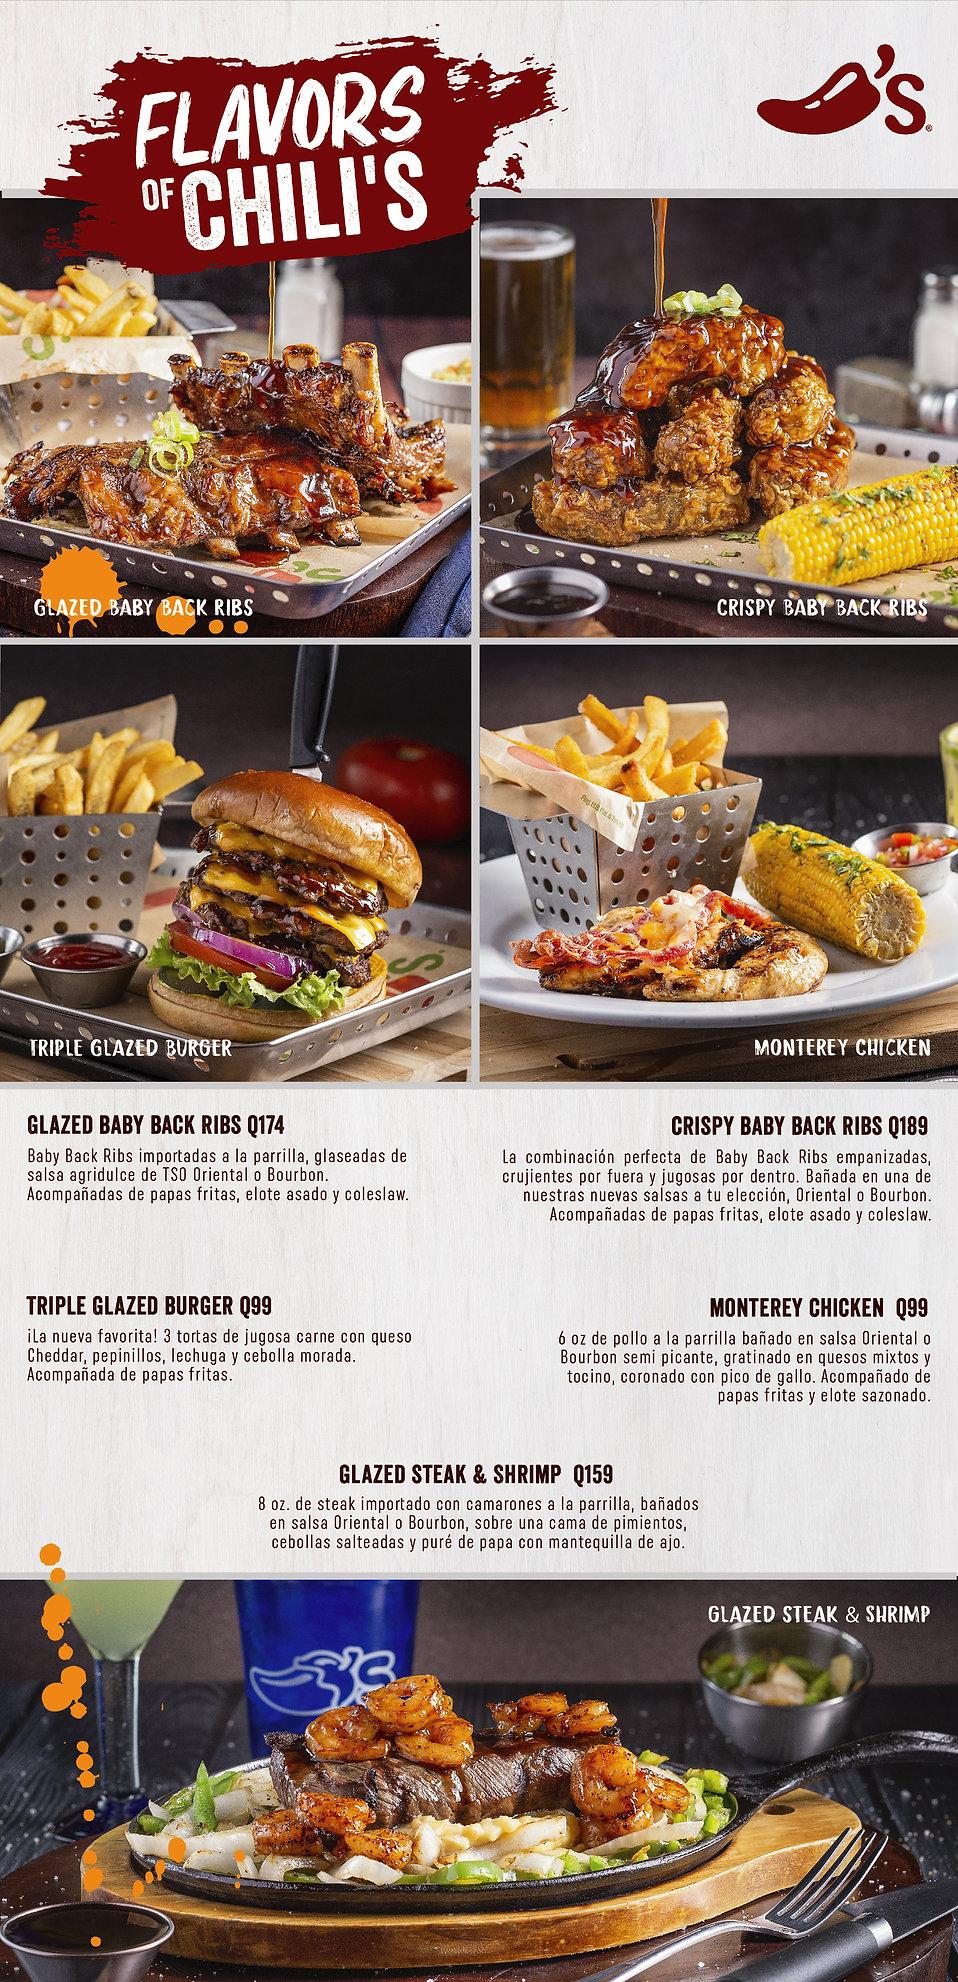 flavors of chilis A 6.3 pulg x 13 pulg (1).JPG